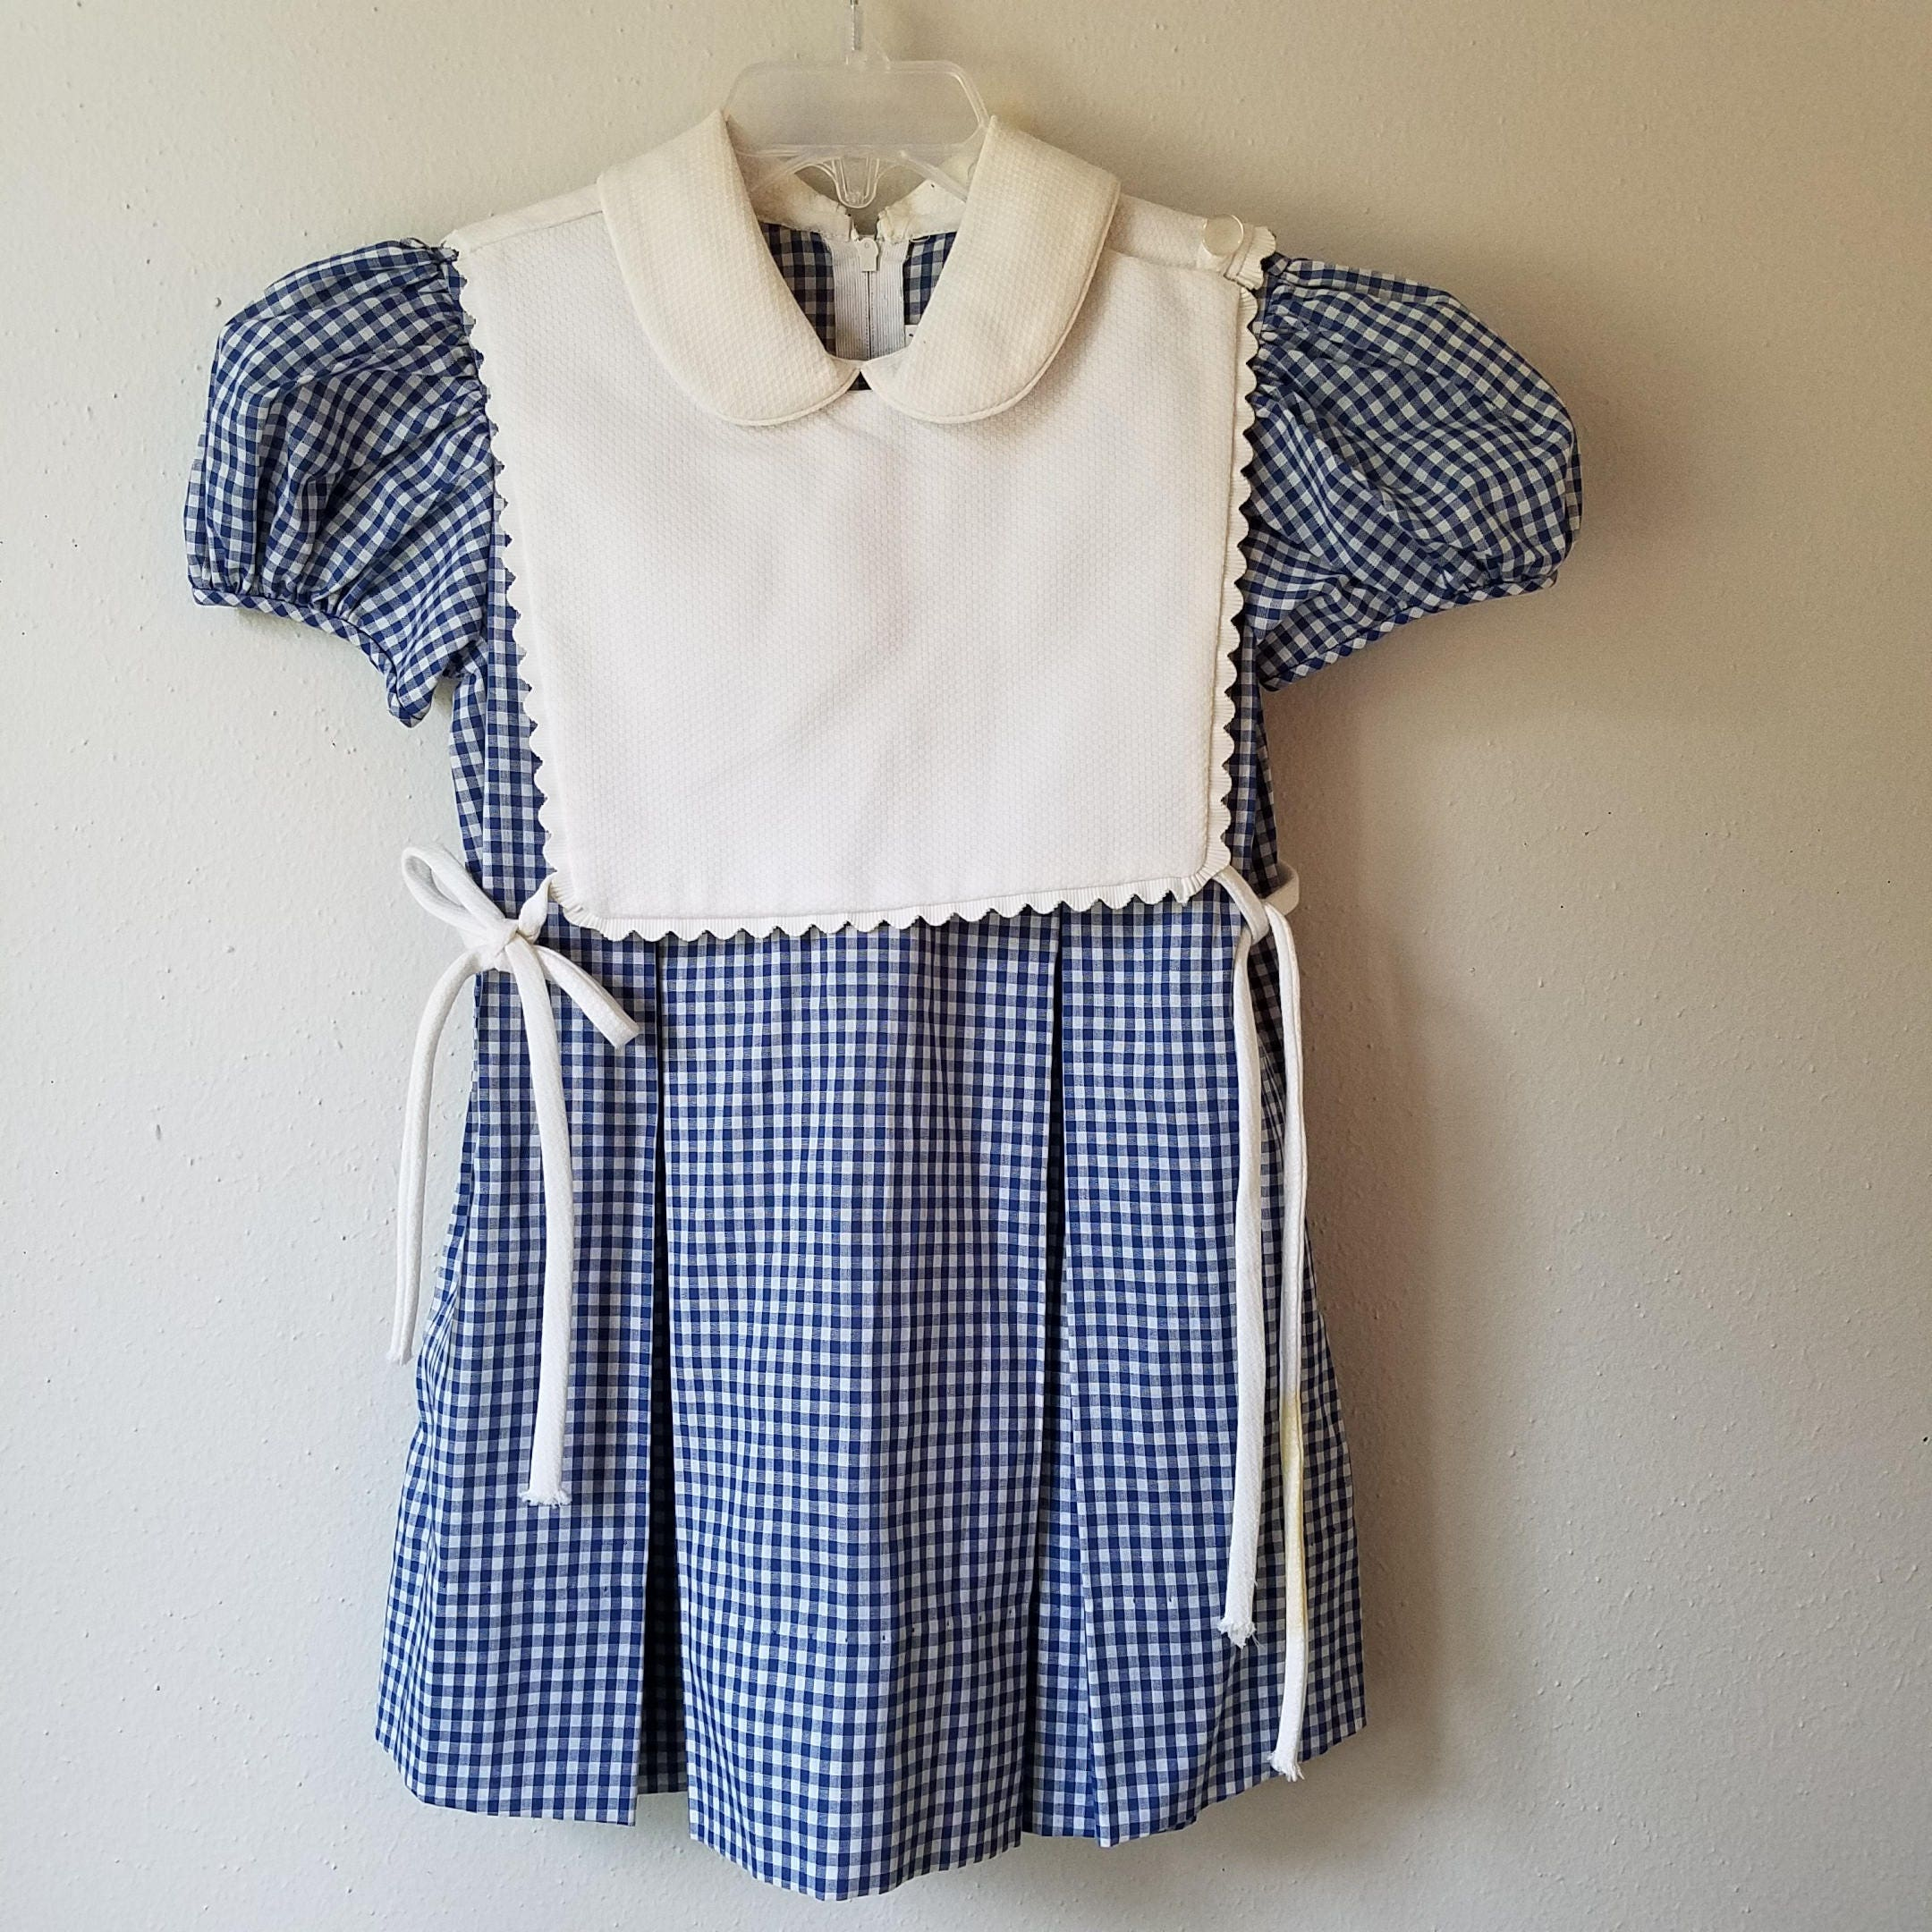 Vintage Girls Blue Gingham Check Dress with White Apron Pinafore Top by Jayne Copeland- Size & Vintage Girls Blue Gingham Check Dress with White Apron Pinafore Top ...